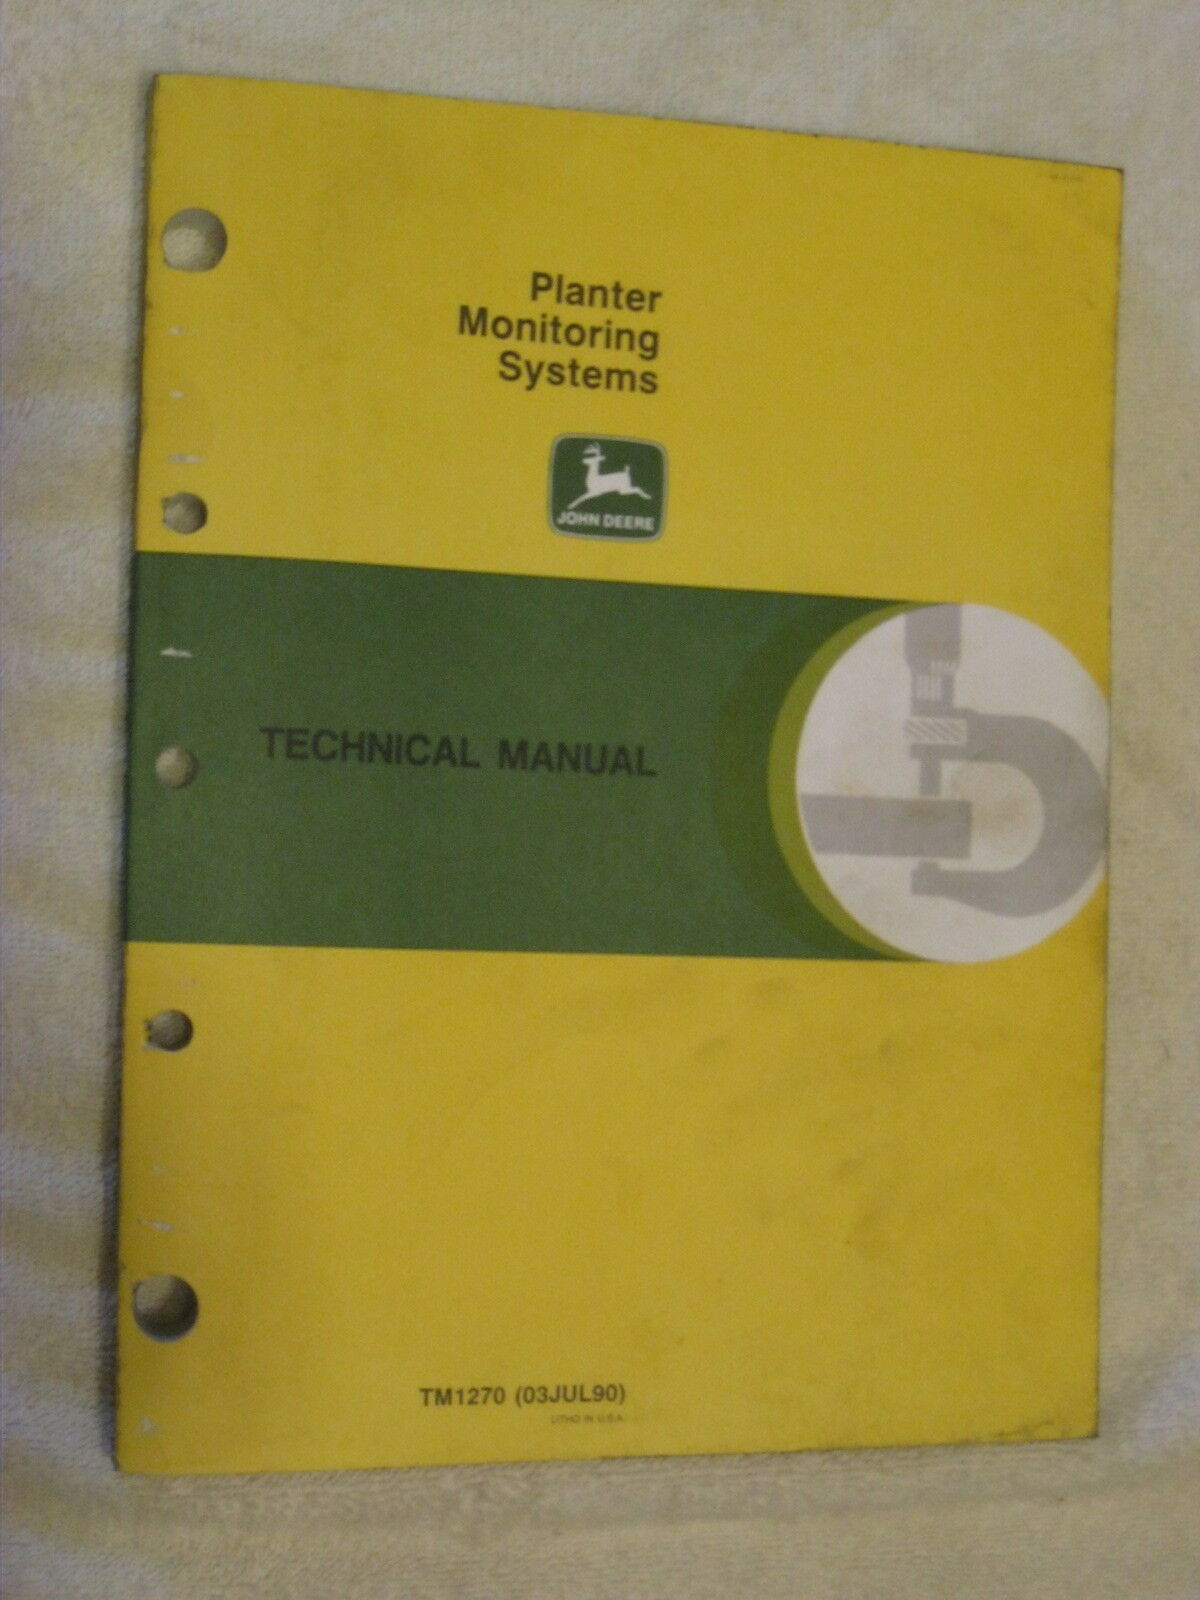 Jd John Deere Planter Monitoring Systems Technical Service Manual Tm1270 1  of 1Only 1 available ...